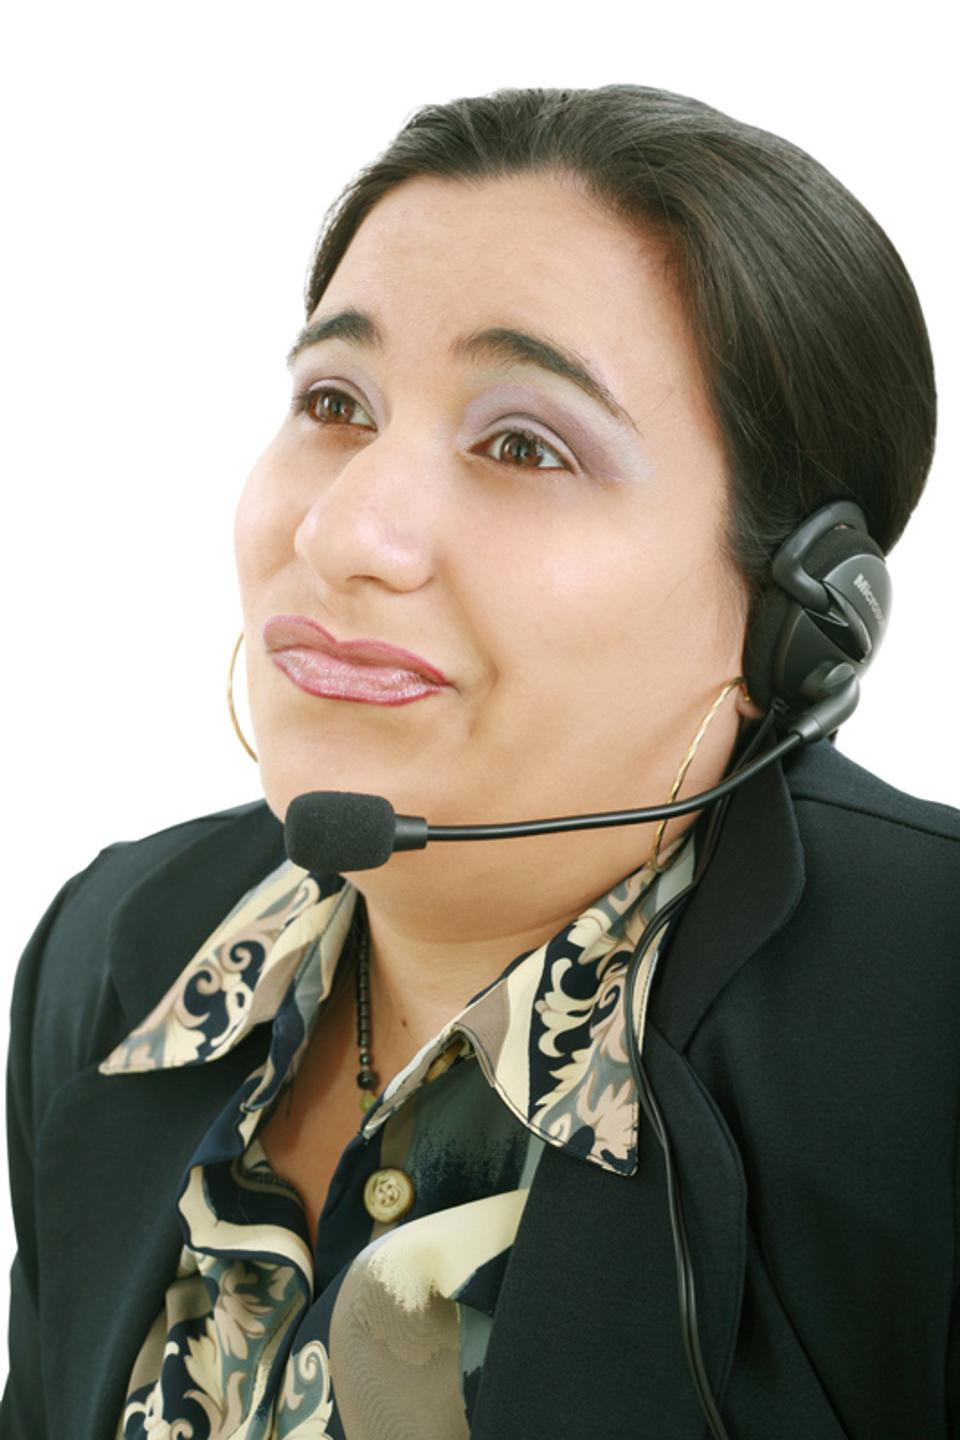 Bad customer service needs to be changed quickly.